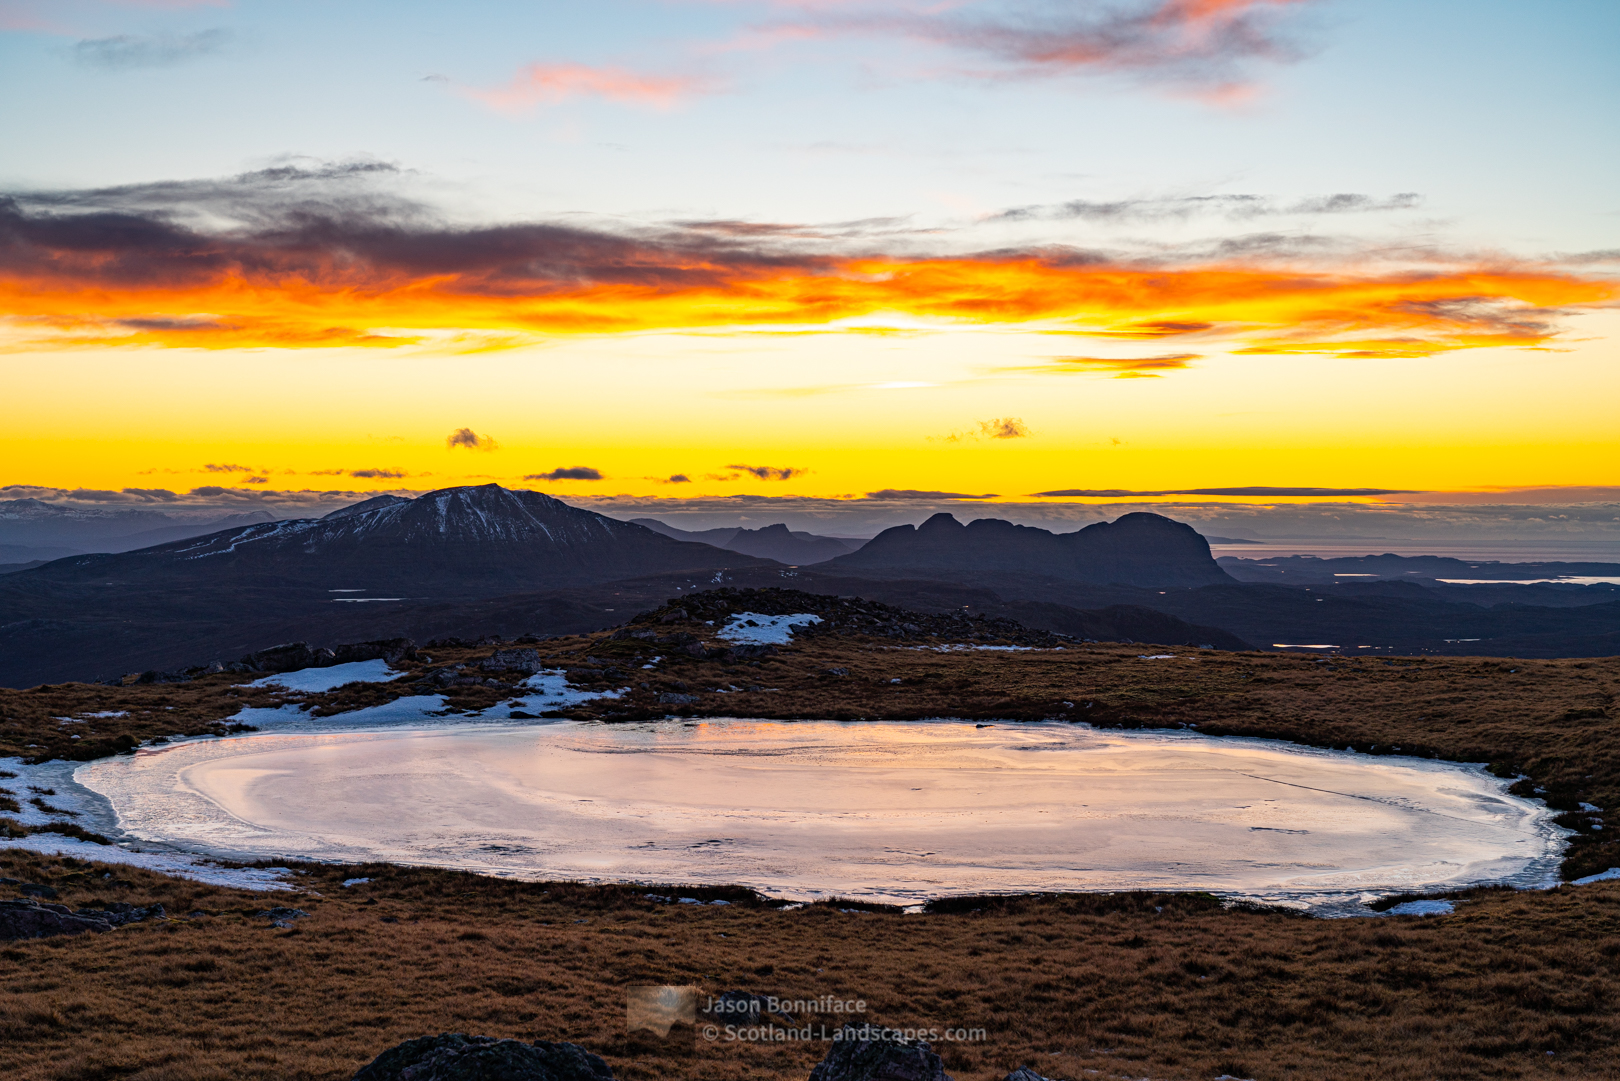 The afterglow, Canisp, Stac Pollaidh and Suilven